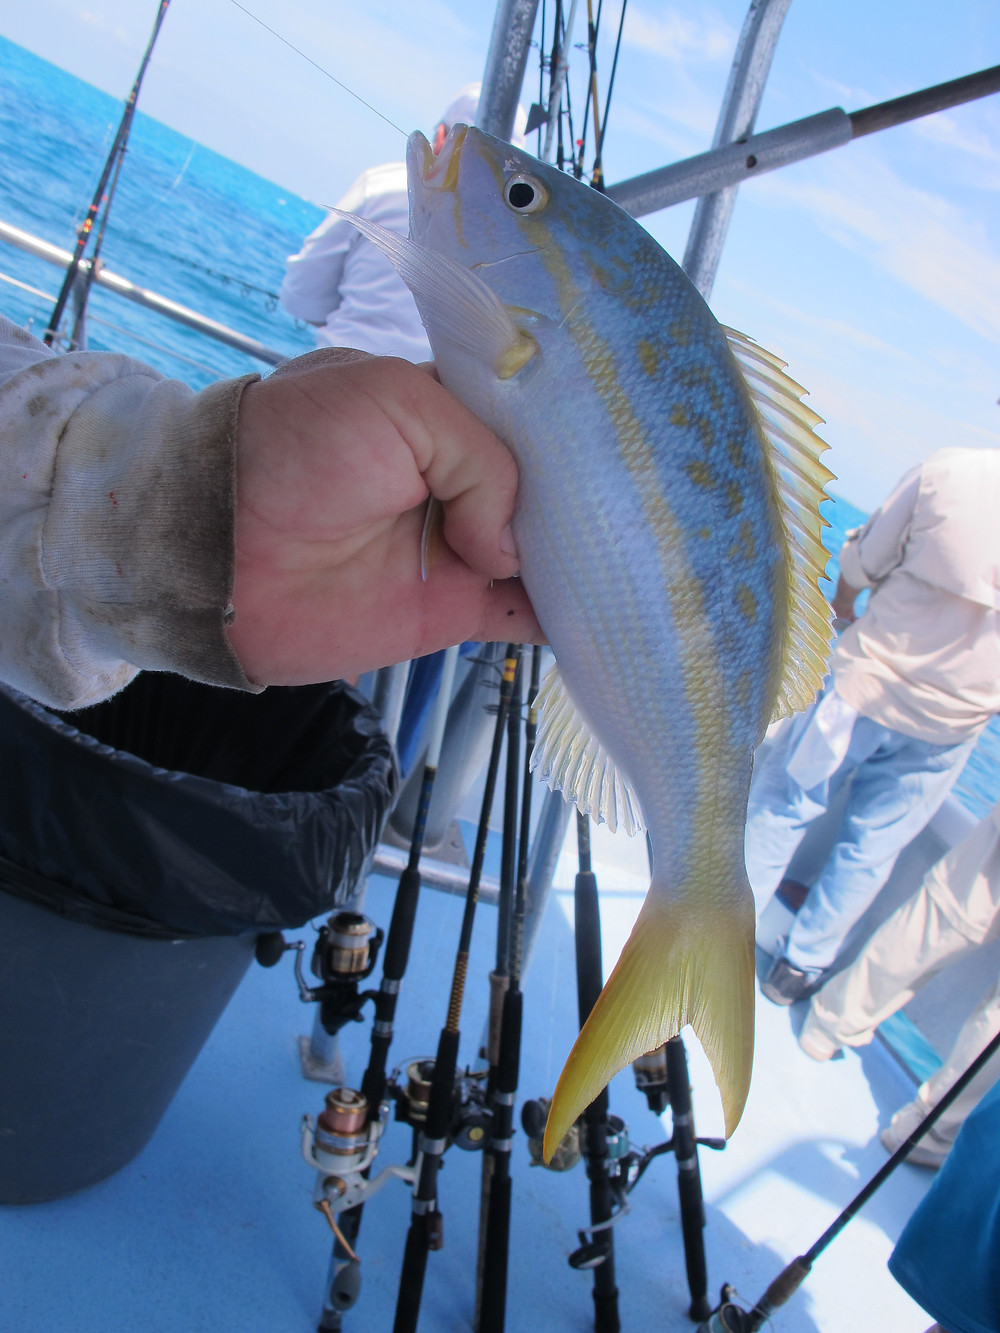 Deep Sea Fishing off of Islamorada. Beautiful fish caught include this Wrasse.